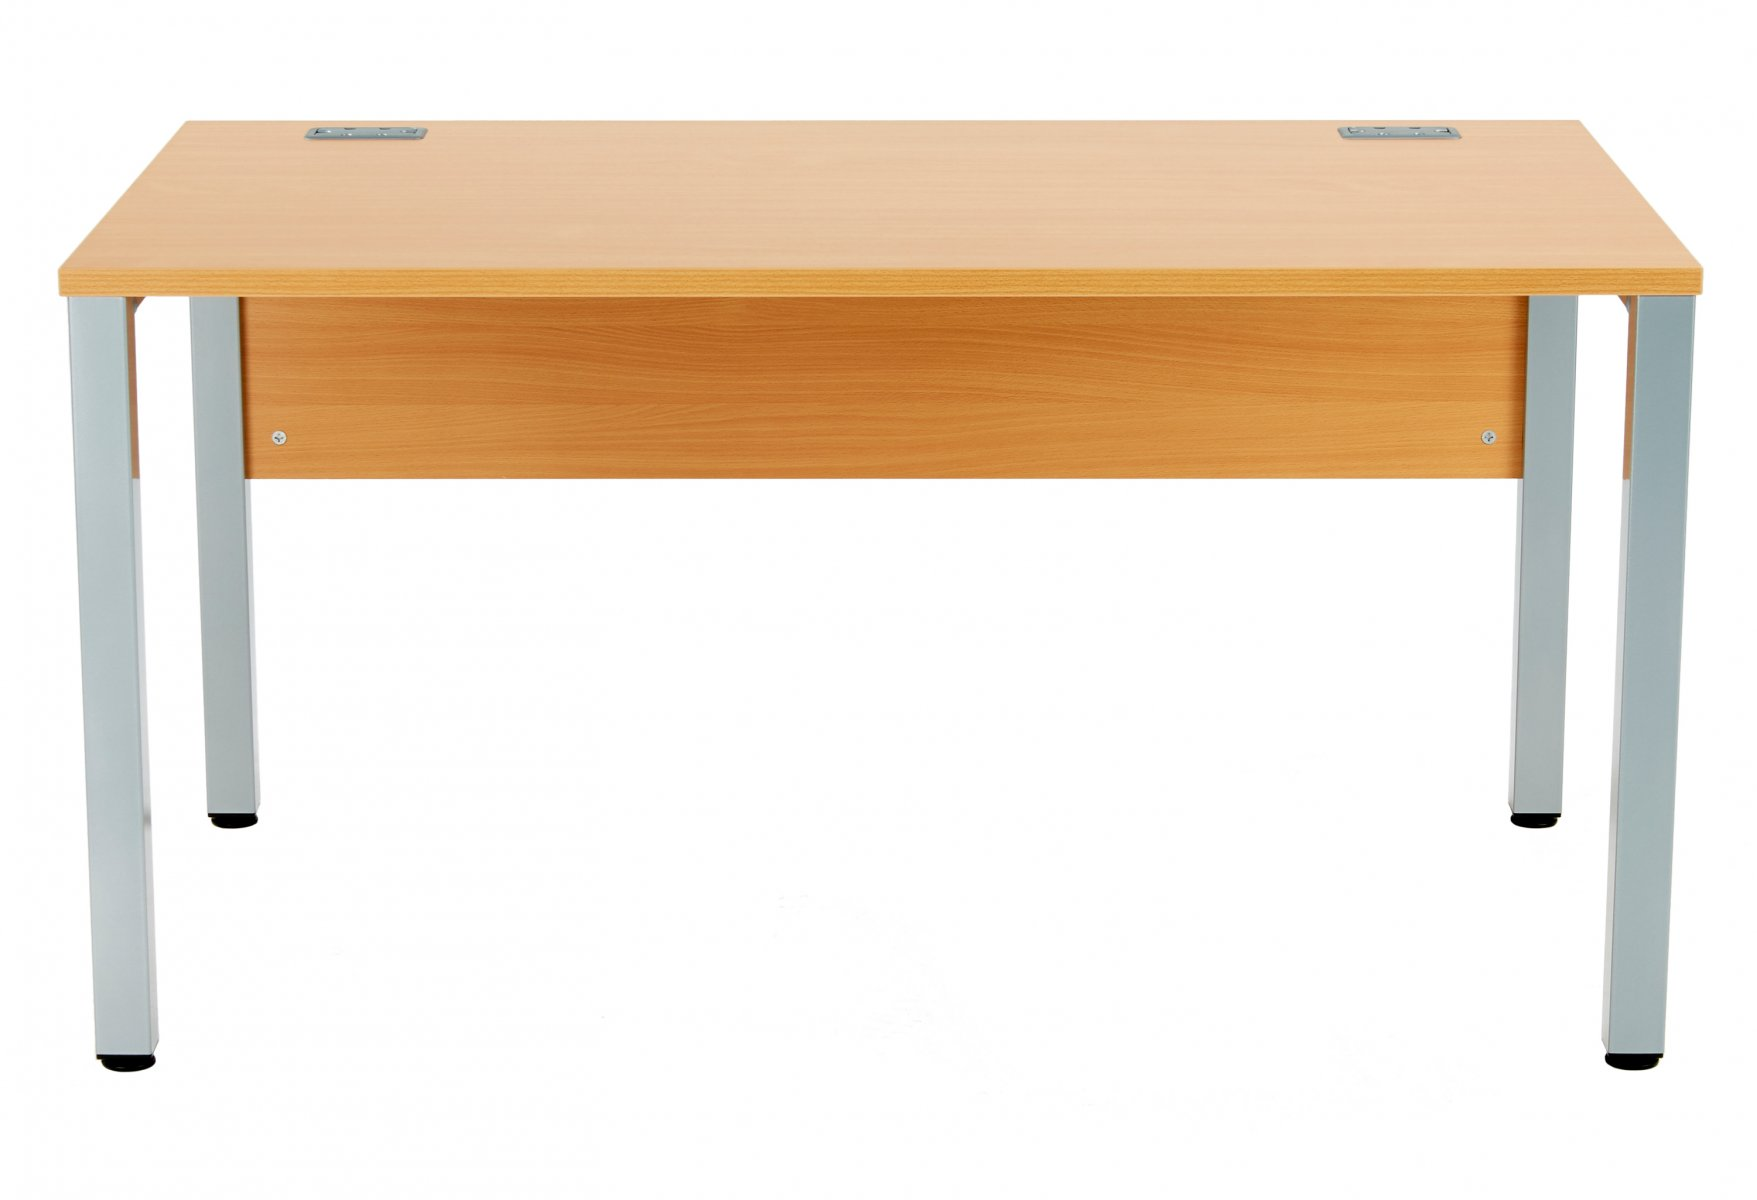 Fraction 3 Rectangular 140 Desk - Beech with Silver Frame